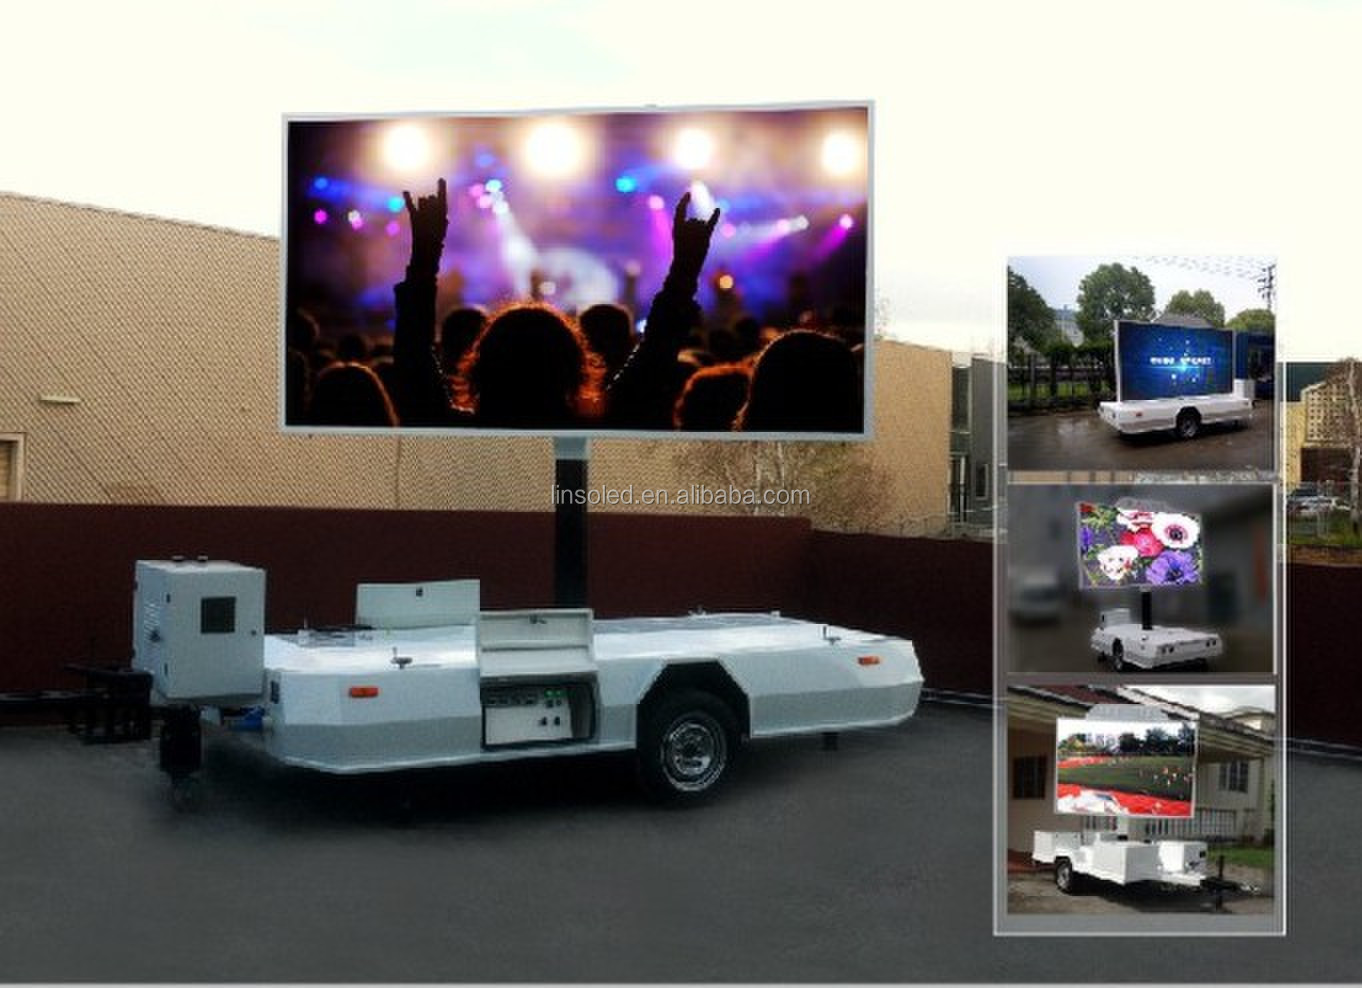 Shanghai LINSO LED Display Vehicle, Mobile Advertising Trailer, LED Screen on trailers